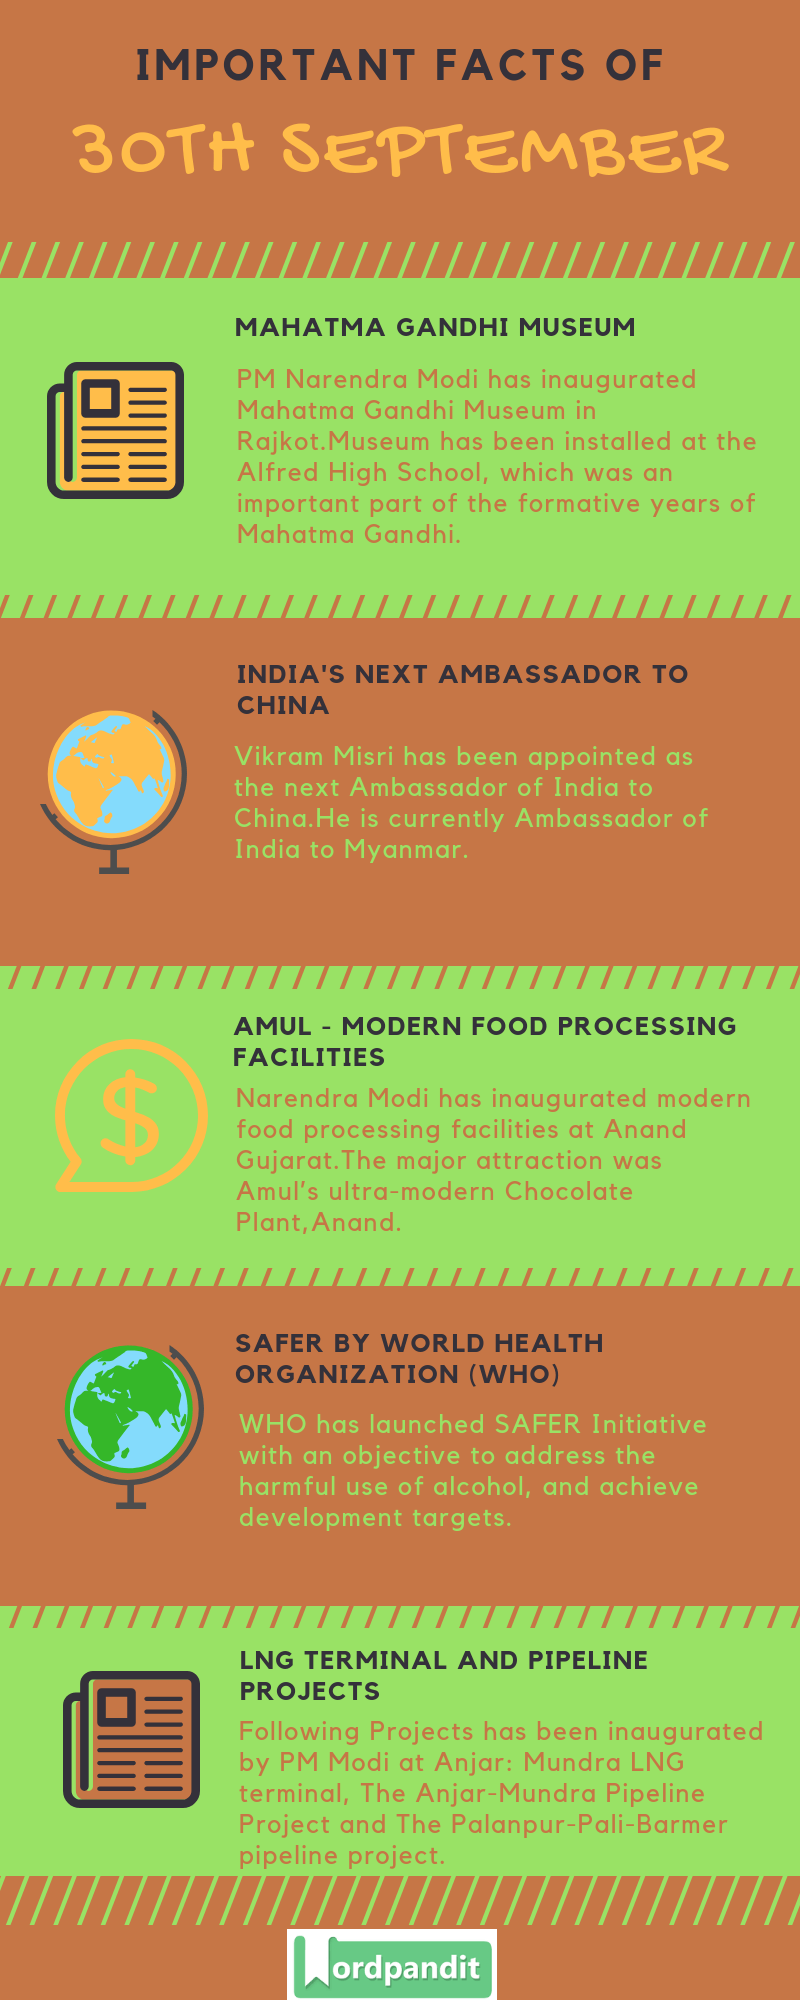 Daily Current Affairs 30 September 2018 Current Affairs Quiz 30 September 2018 Current Affairs Infographic